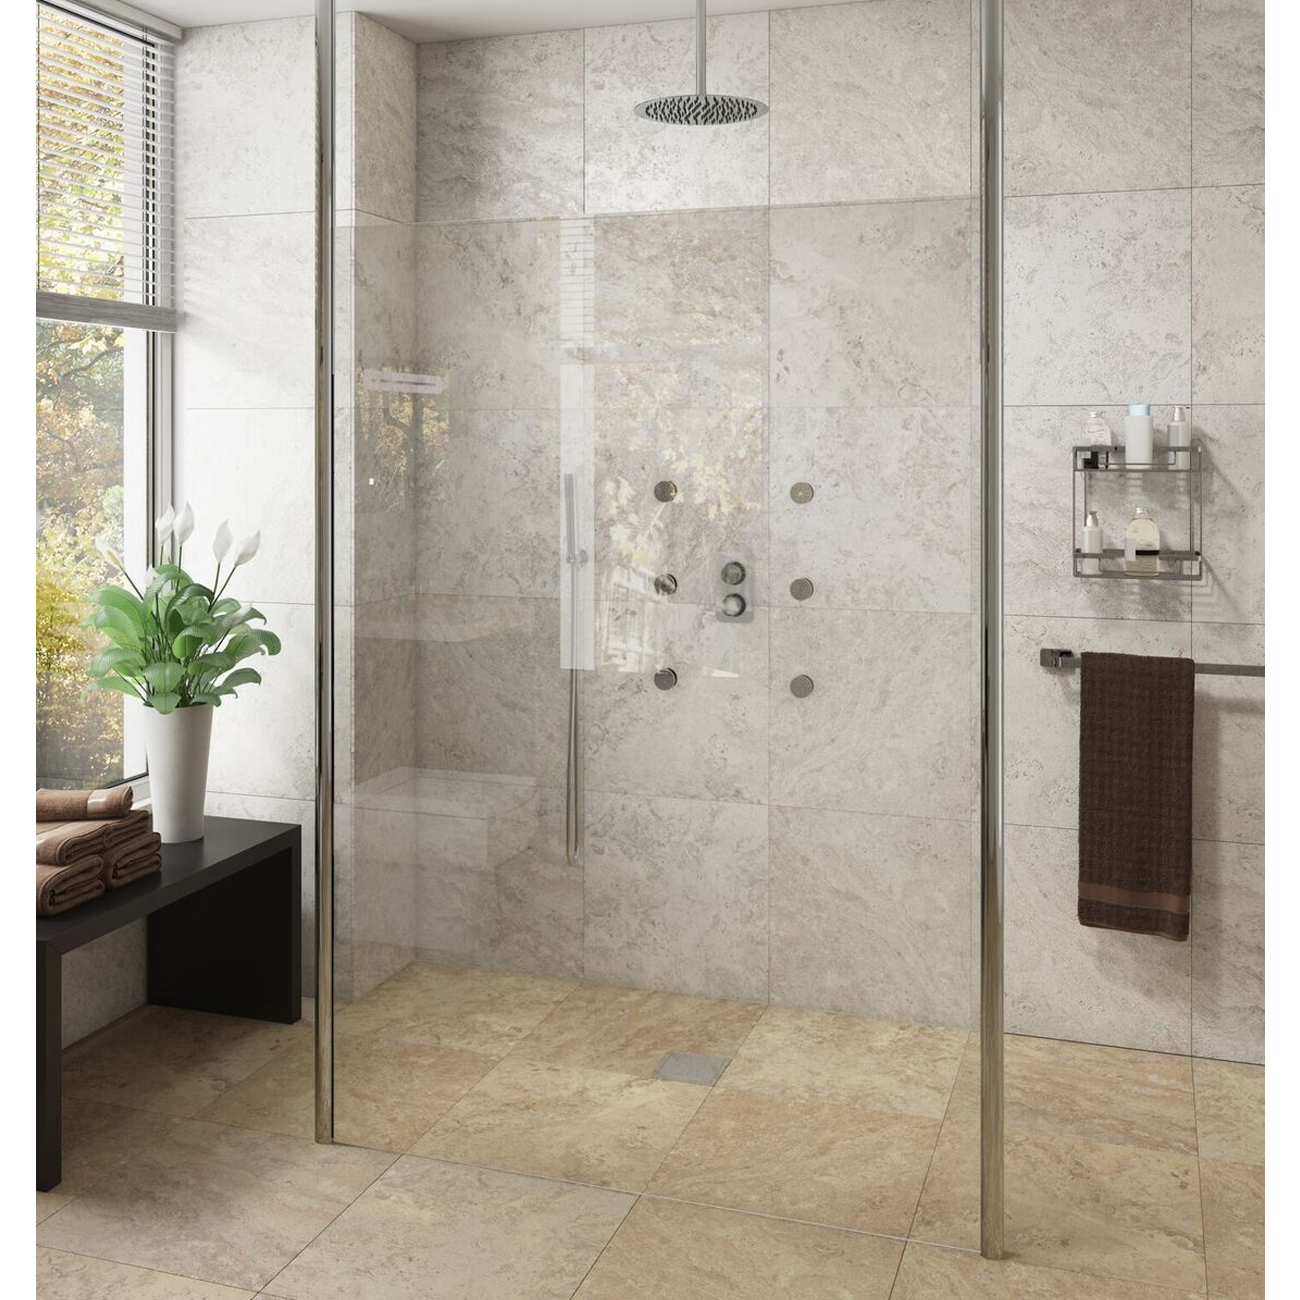 Cali Lana Free Standing Wet Room Screen 2000mm High x 970mm Wide - 10mm Glass Only